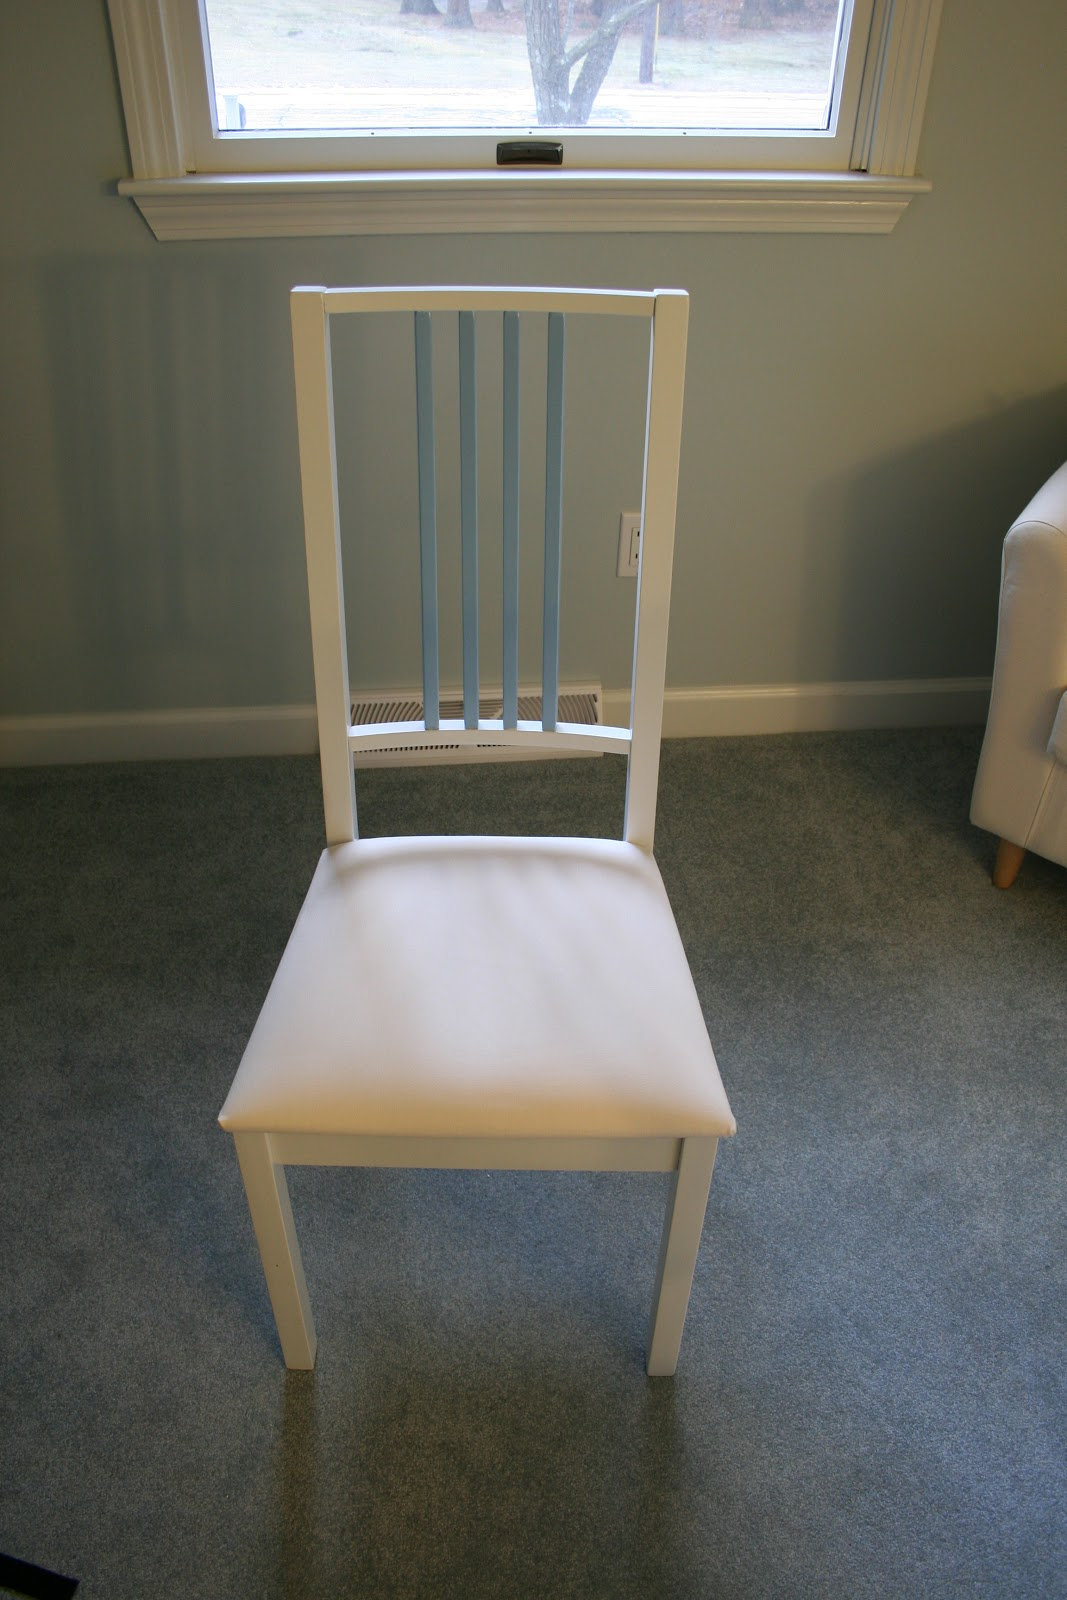 Old Ikea Chair Covers Costco Lift Function And Style Borje Mod Craft Room Update